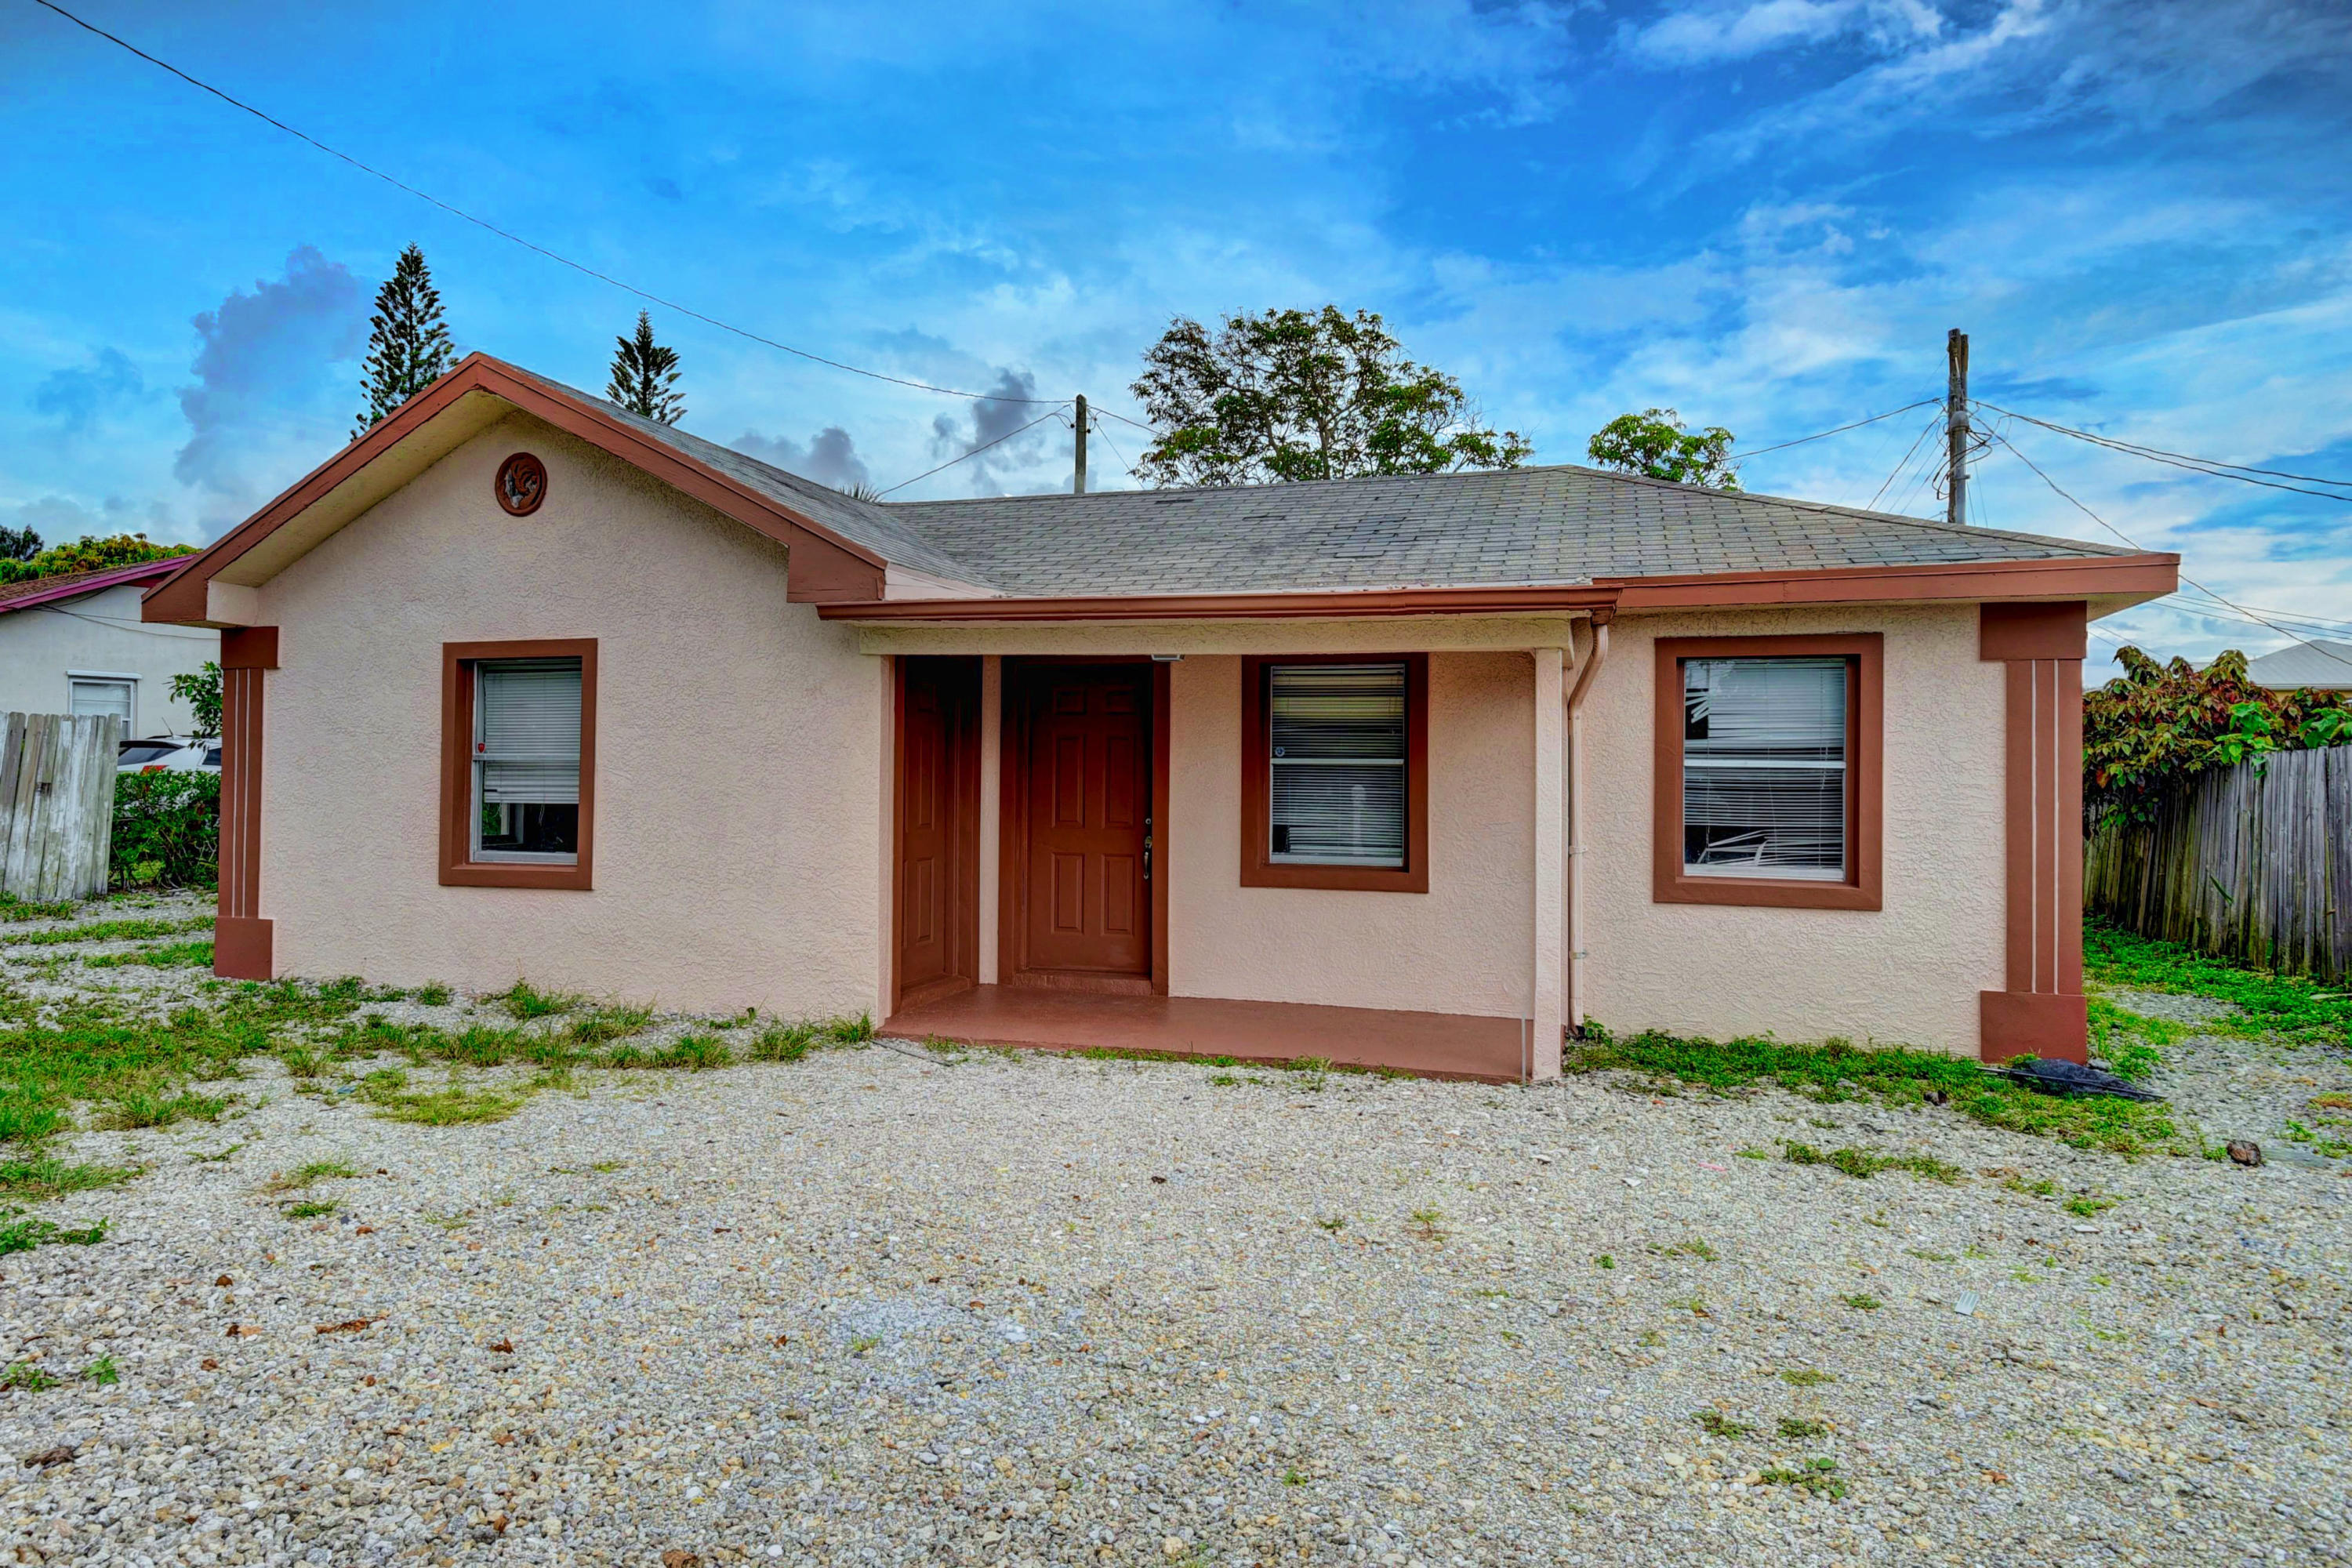 Completely renovated house from top to the botton.New Bathroom, new tub, new kitchen including stainless steel appliances , tile floor, fresh paint inside and outside.Brand new roof (2020)